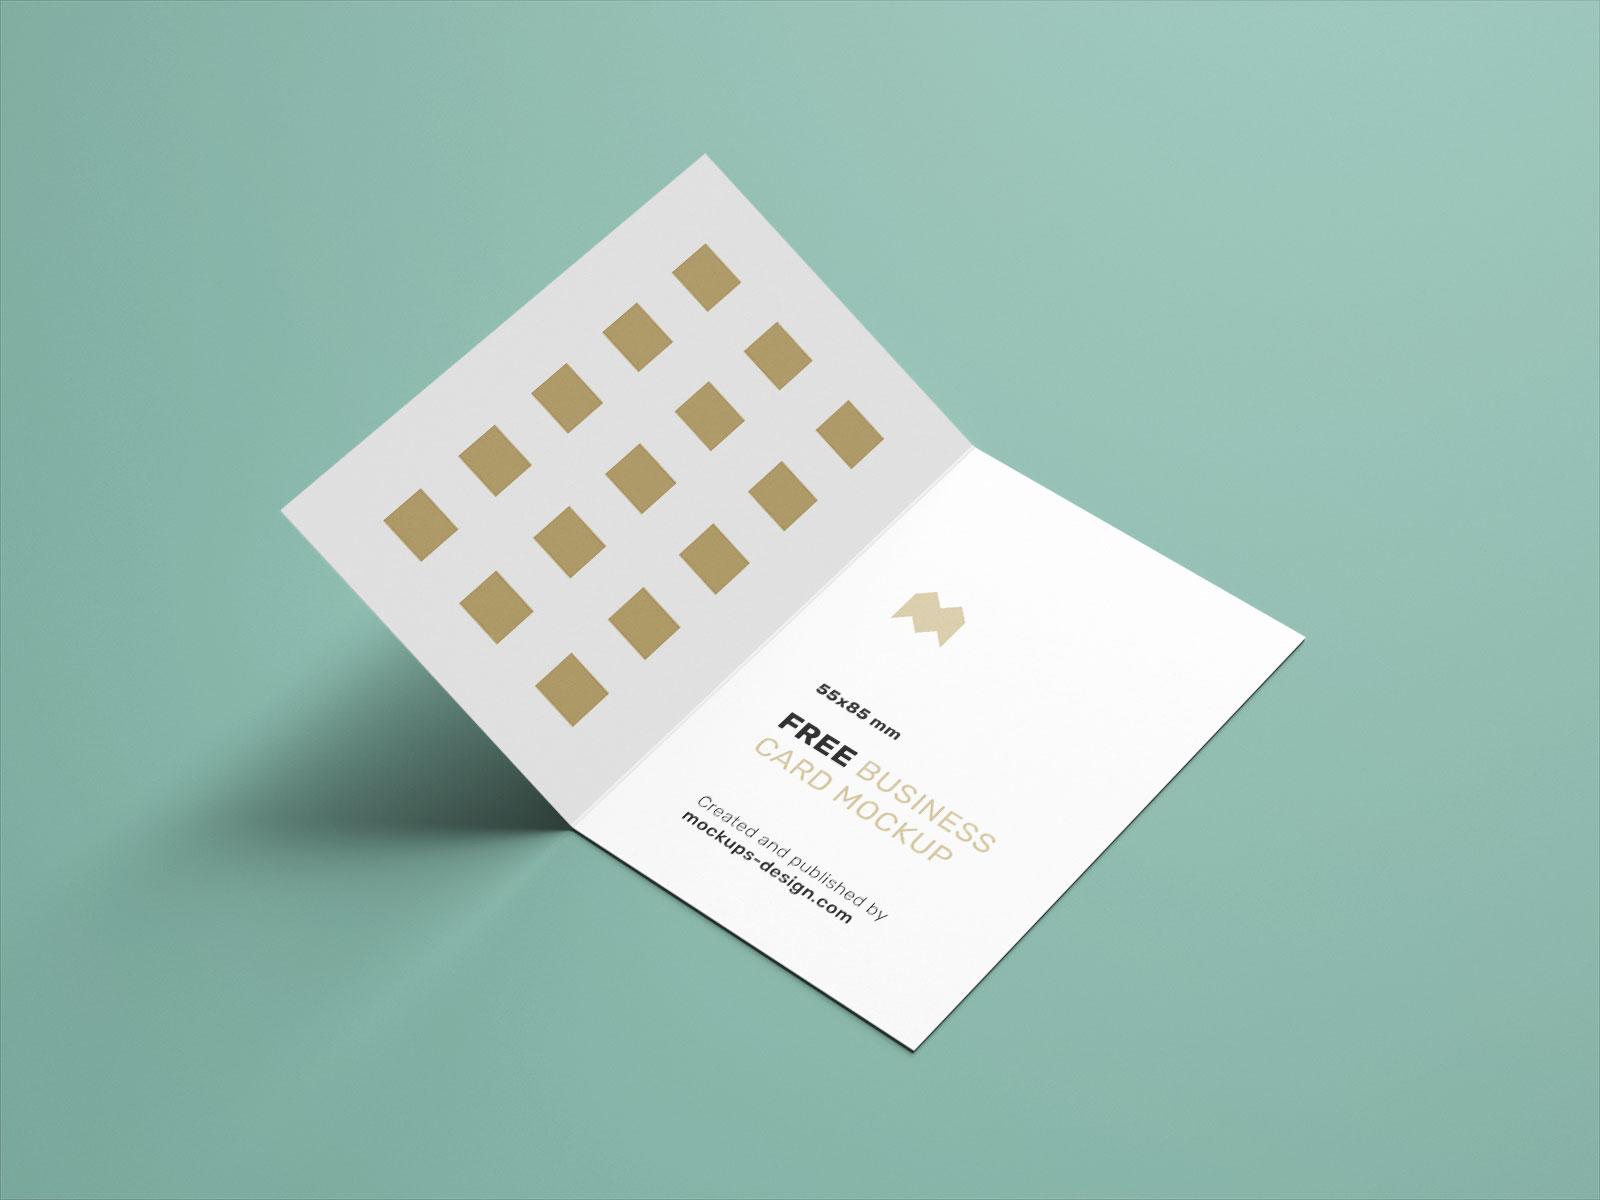 Free Vertical Folded Business Card Mockup PSD Set UK Size (1)